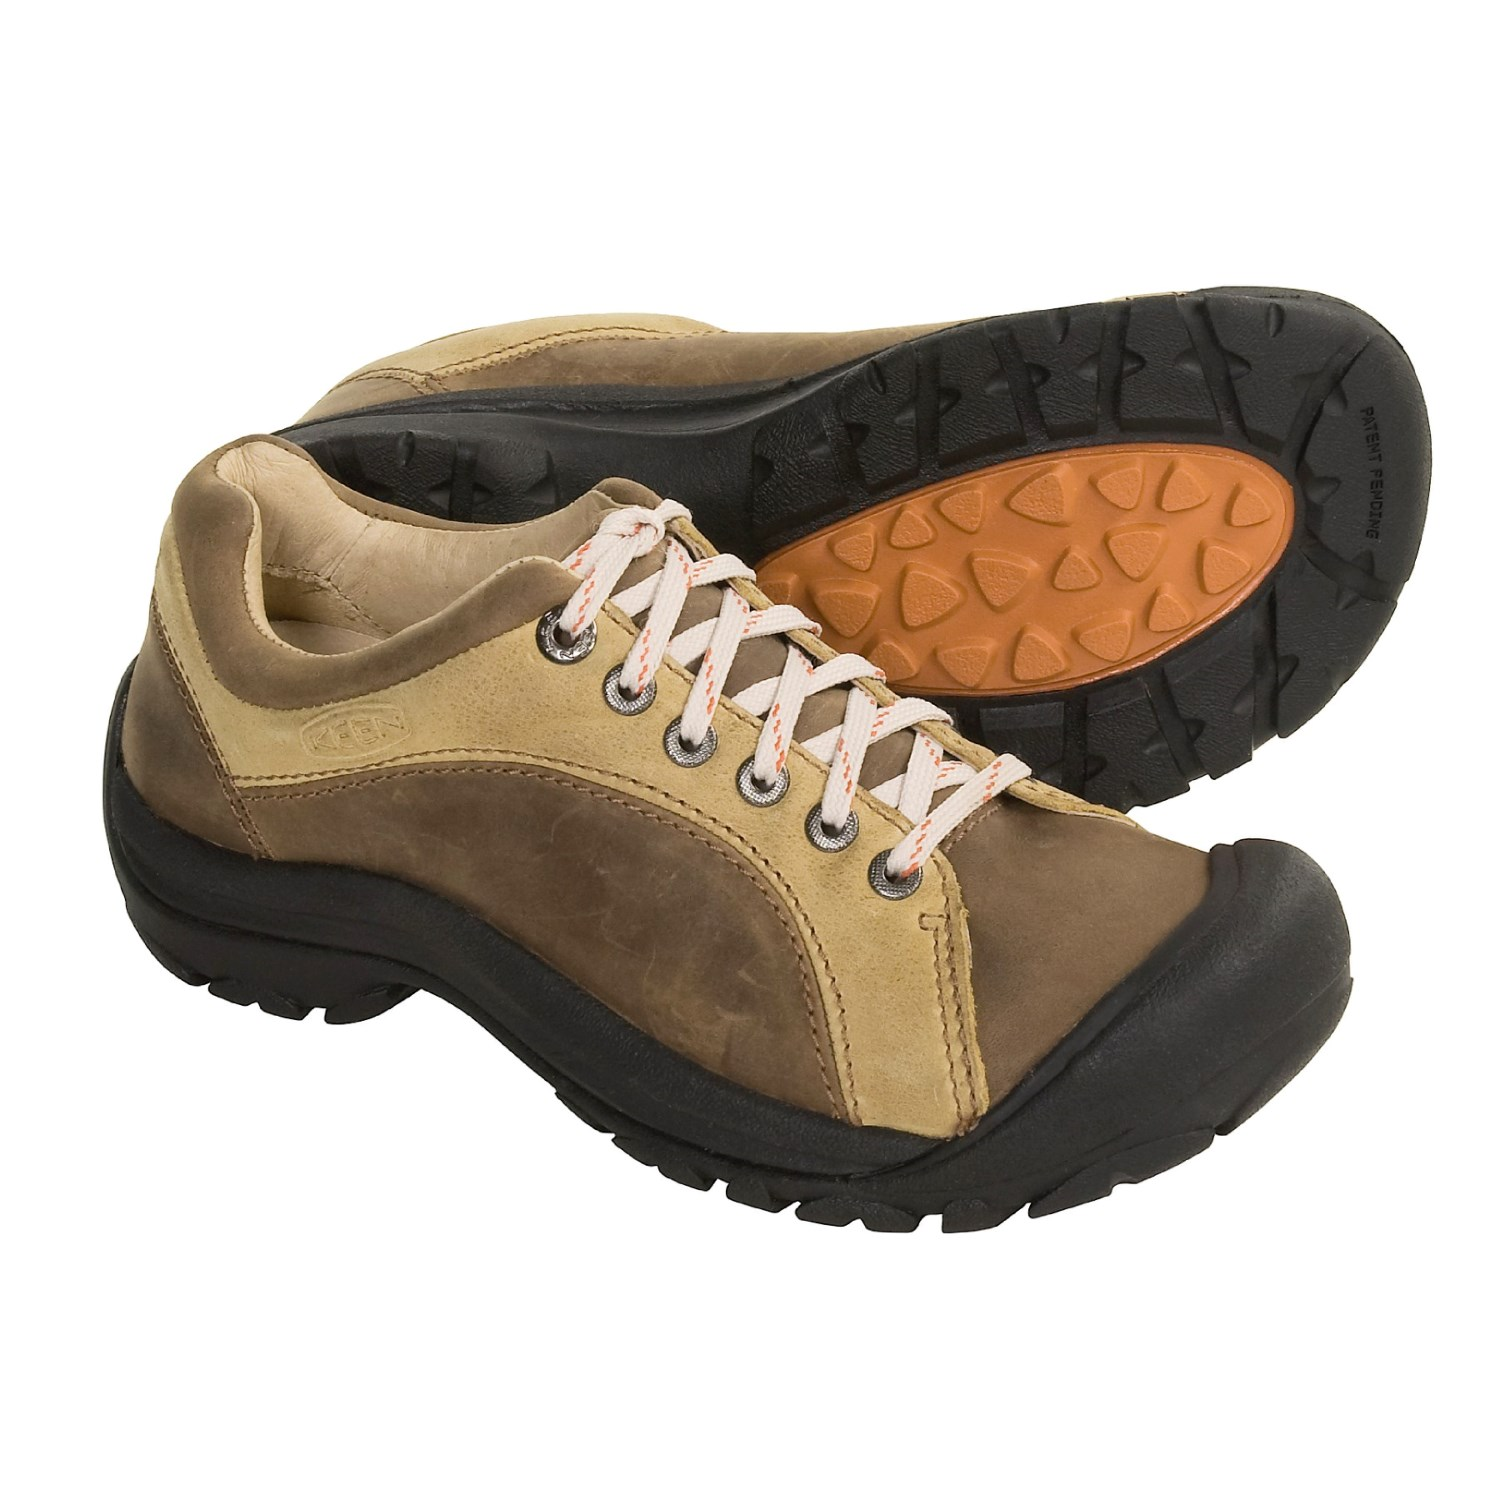 Shop Men's Keen Brown Tan size 12 Sneakers at a discounted price at Poshmark. Description: Keen khaki canvas coronado oxford sneakers shoes size these shoes are in excellent pre-owned condition. Sold by arterri. Fast delivery, full service customer support.